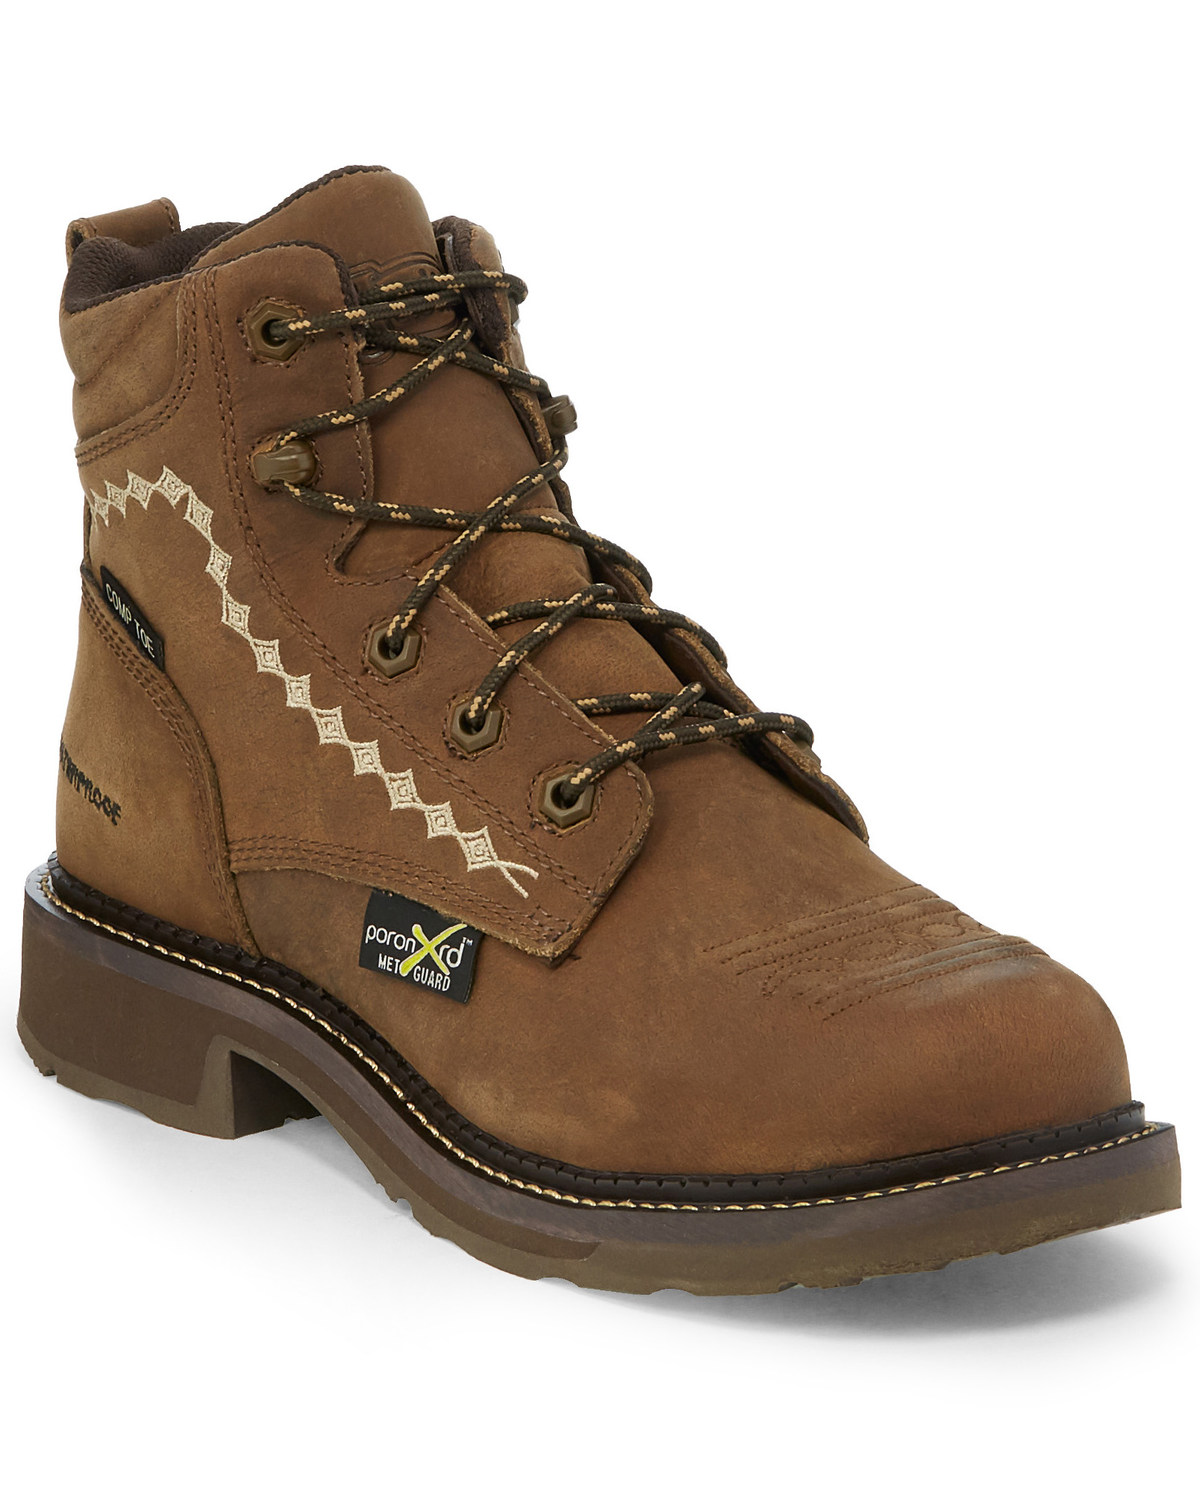 9d30871edf6 Justin Women's Lanie Waterproof Work Boots - Composite Toe